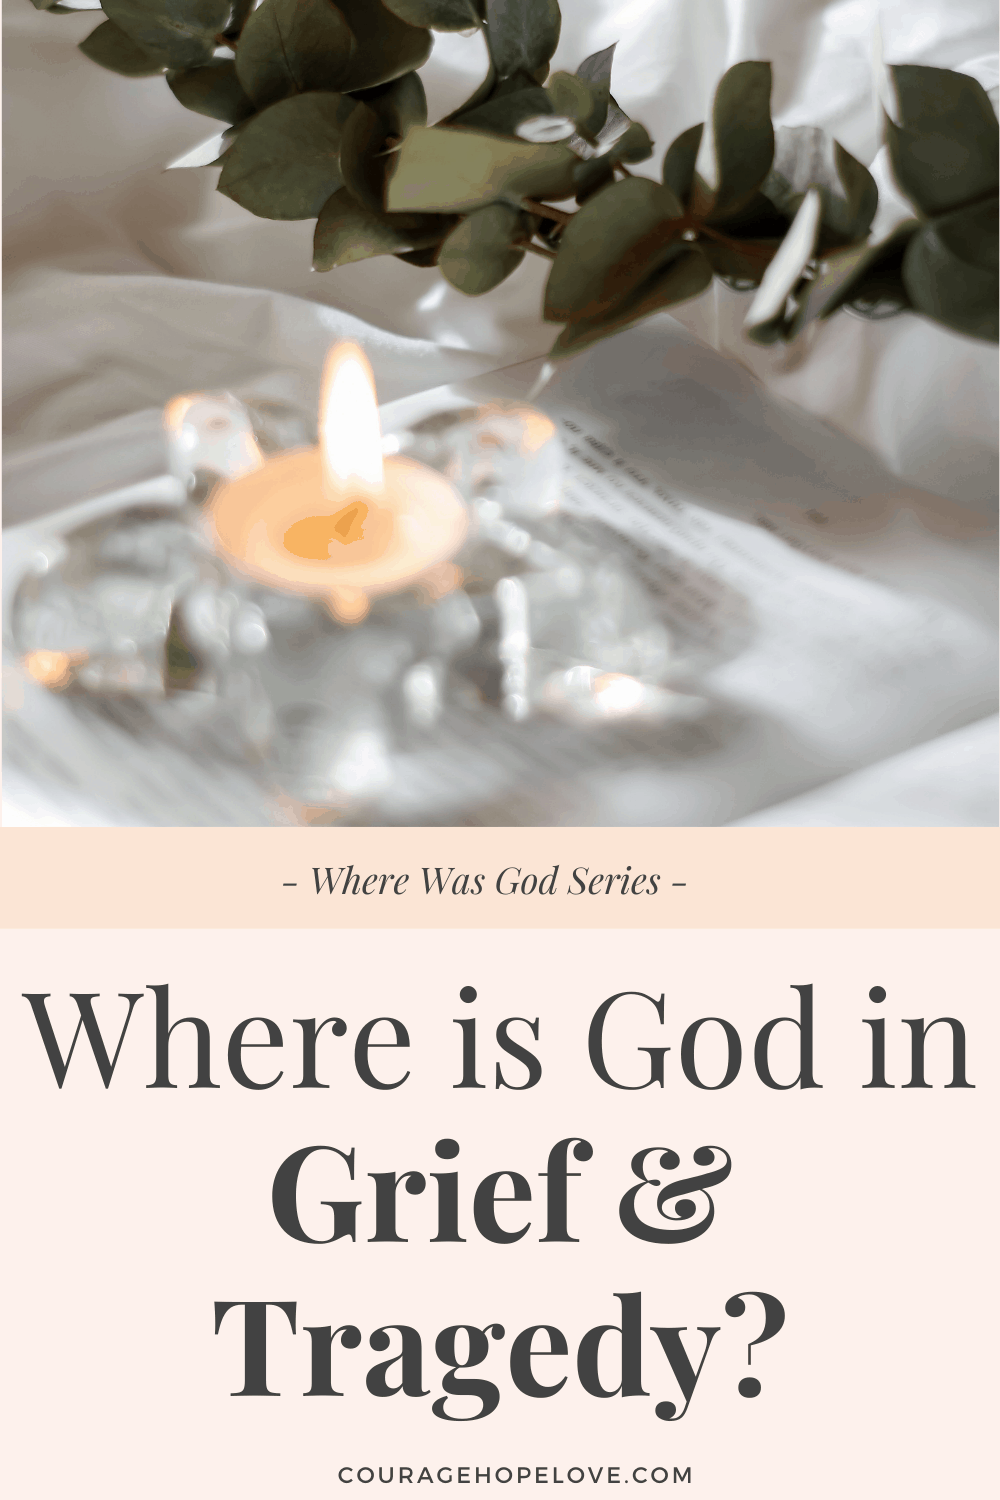 Where is God in Grief and Tragedy?